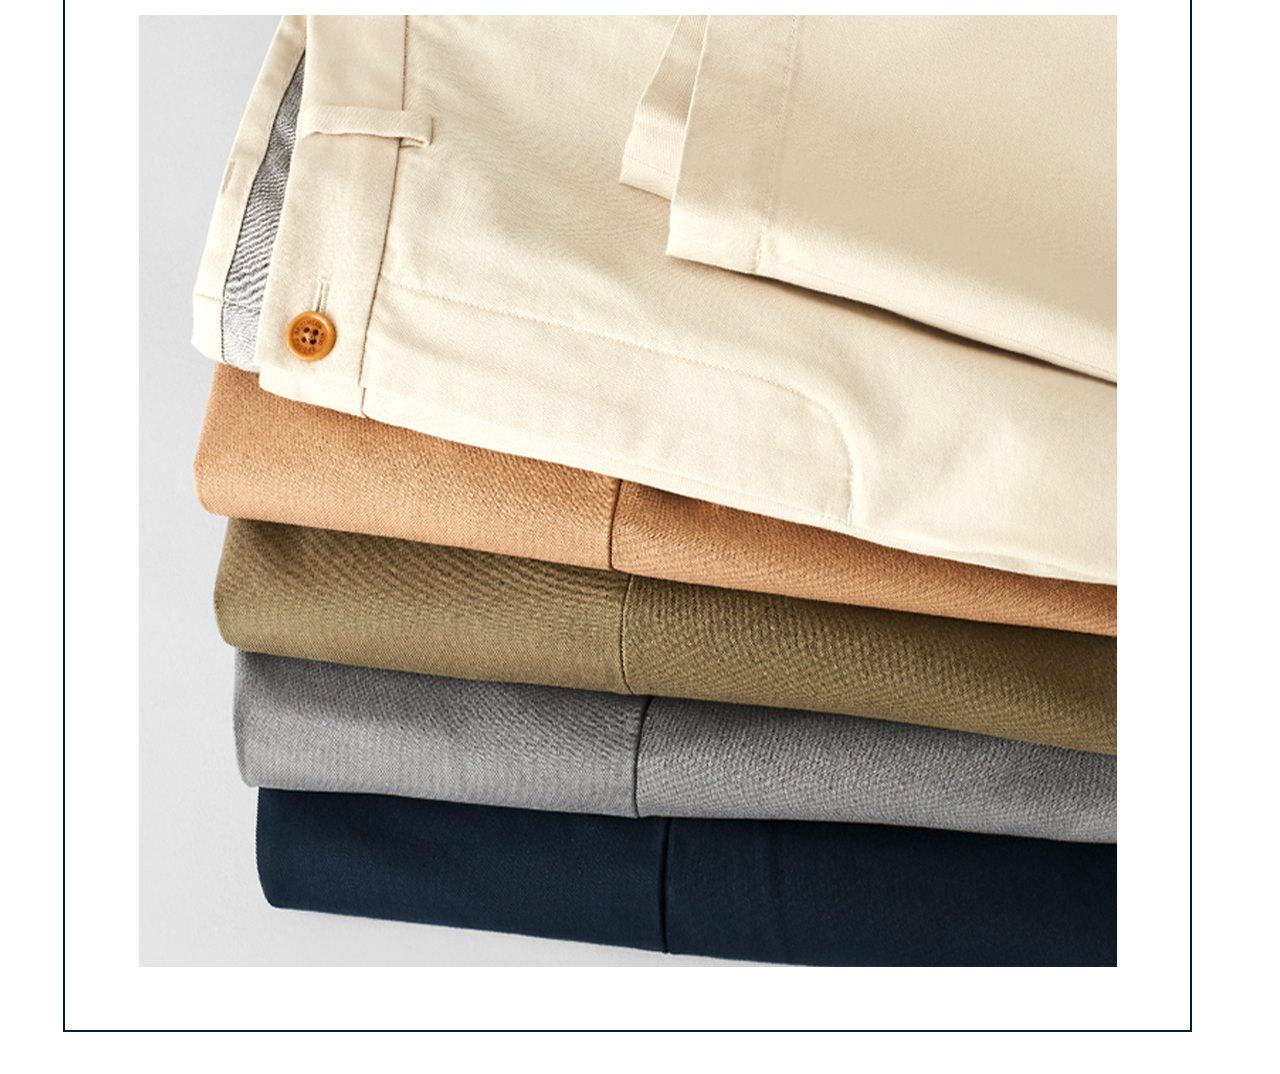 Best-Selling Chinos, Best-Ever Price Experience our customer-favorite Advantage Chinos - now on sale for just $39.